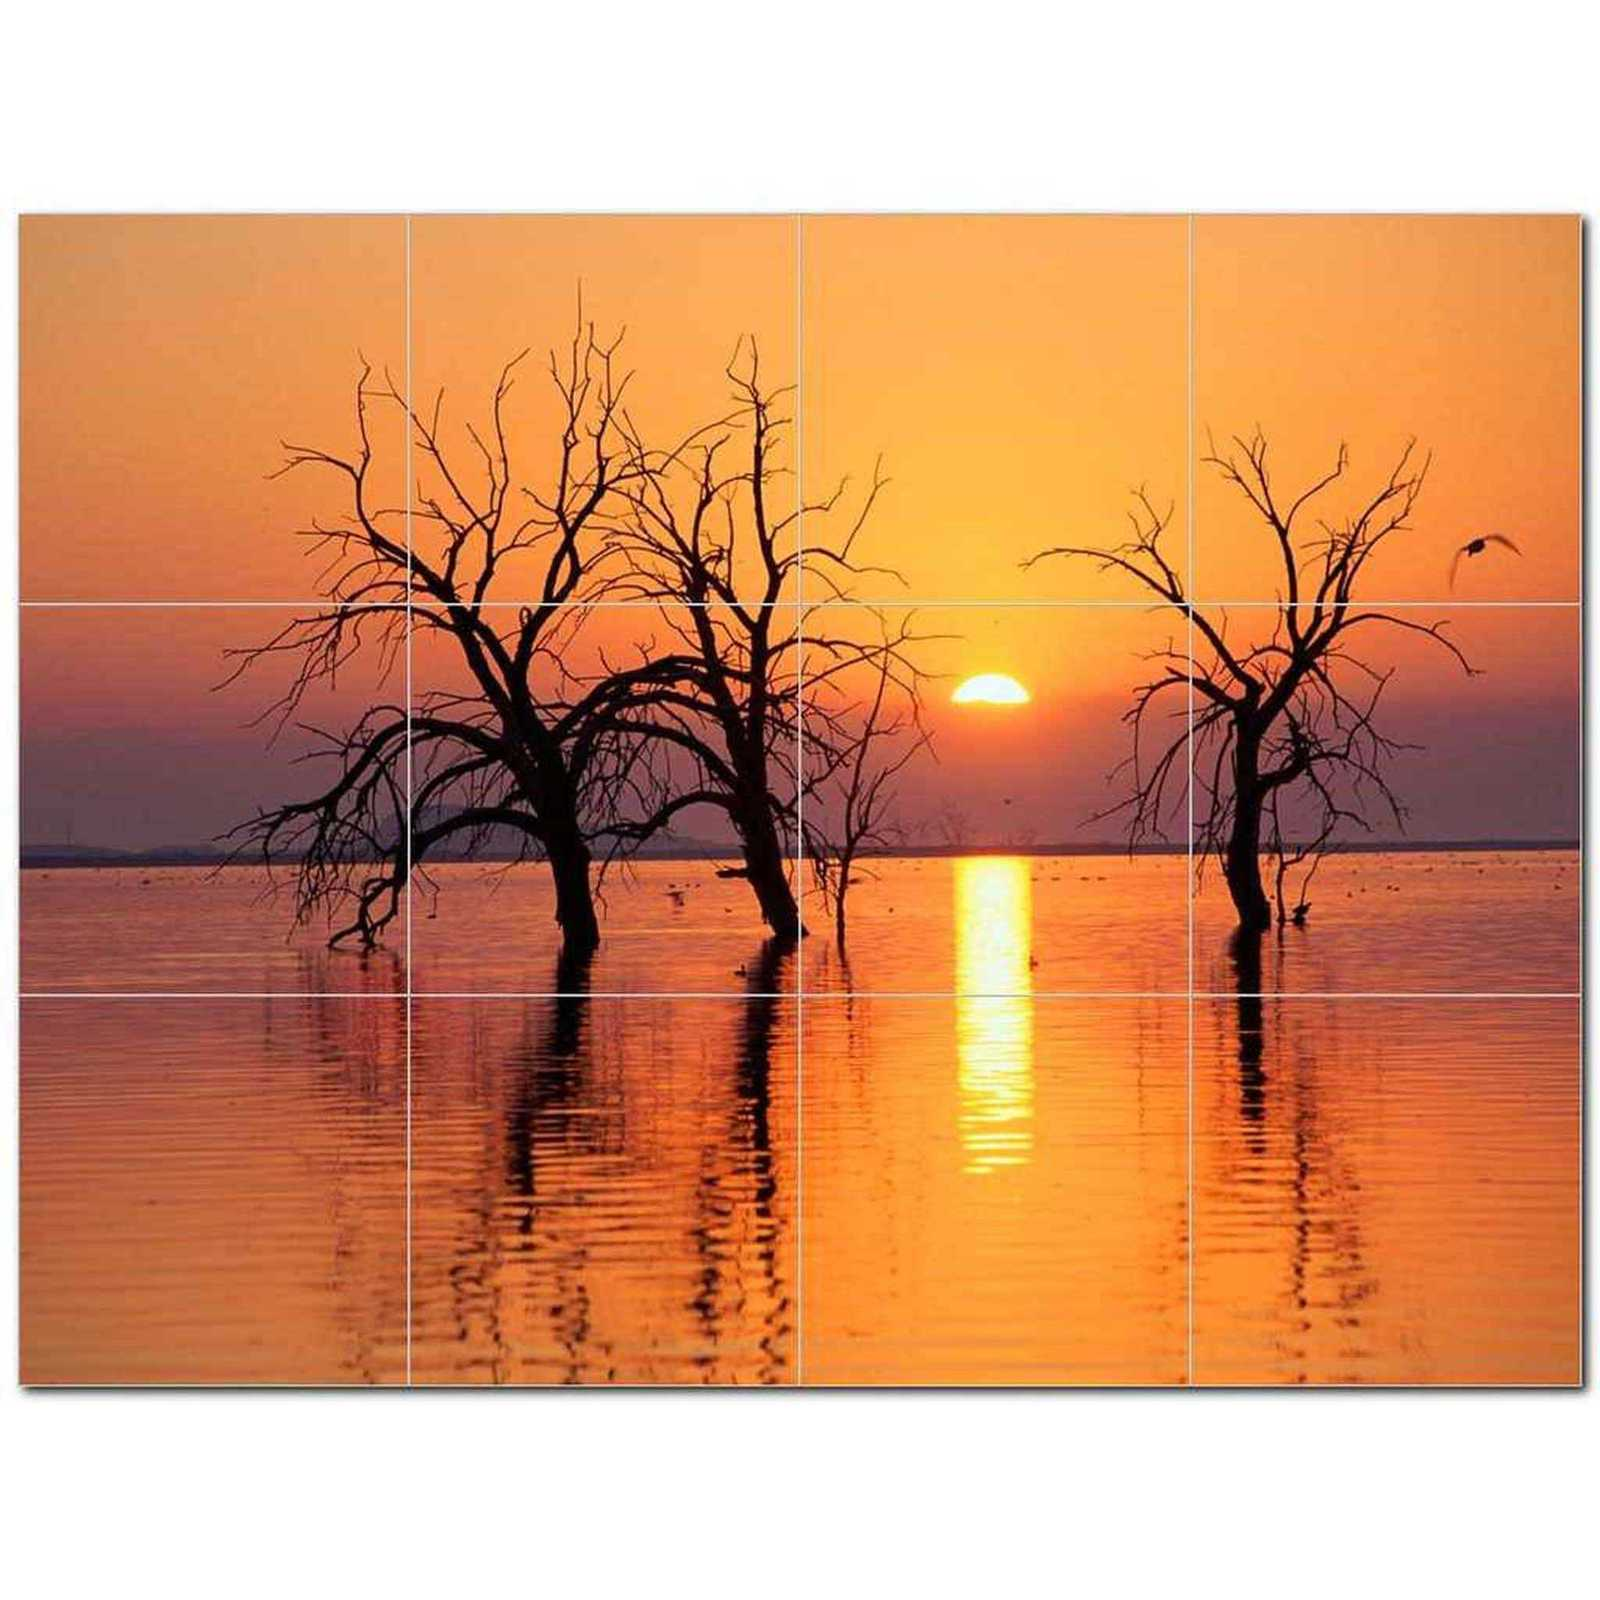 Primary image for Sunset Photo Ceramic Tile Mural Kitchen Backsplash Bathroom Shower BAZ405898